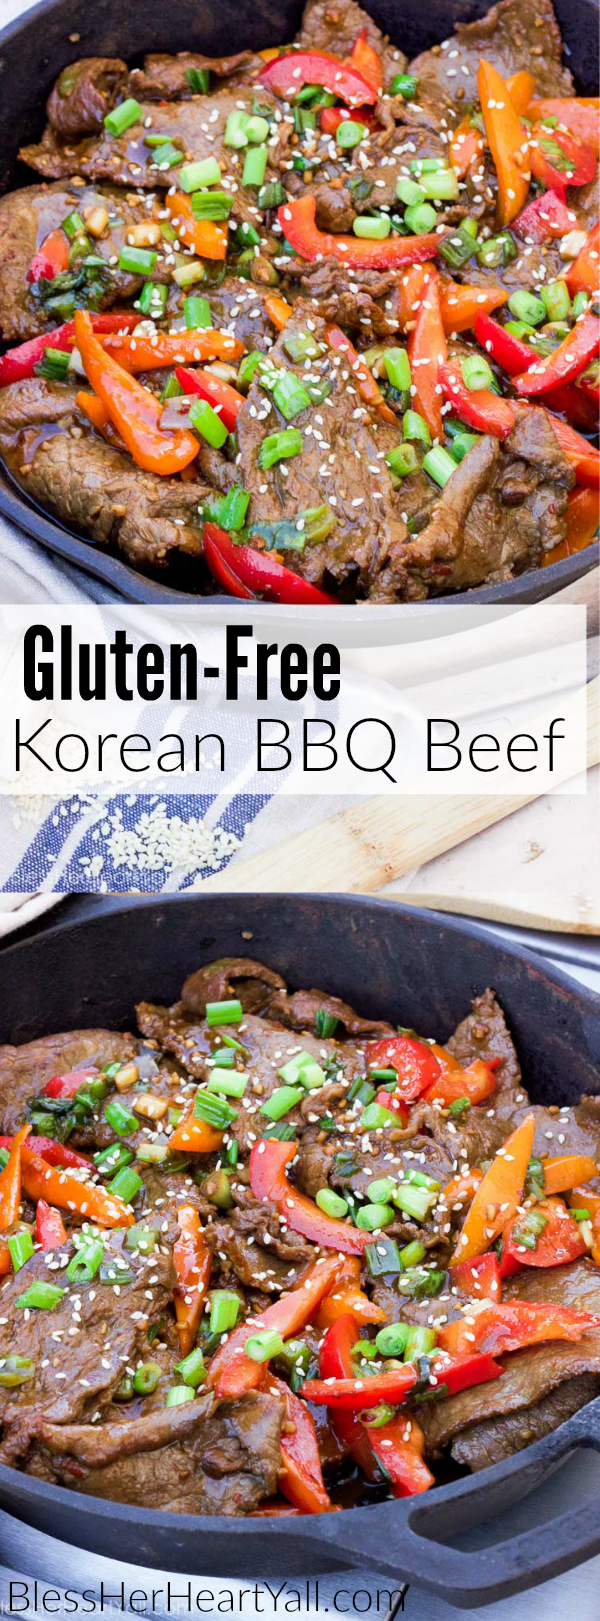 Easy and Quick Gluten-Free Bulgogi (Korean BBQ Beef) Tacos